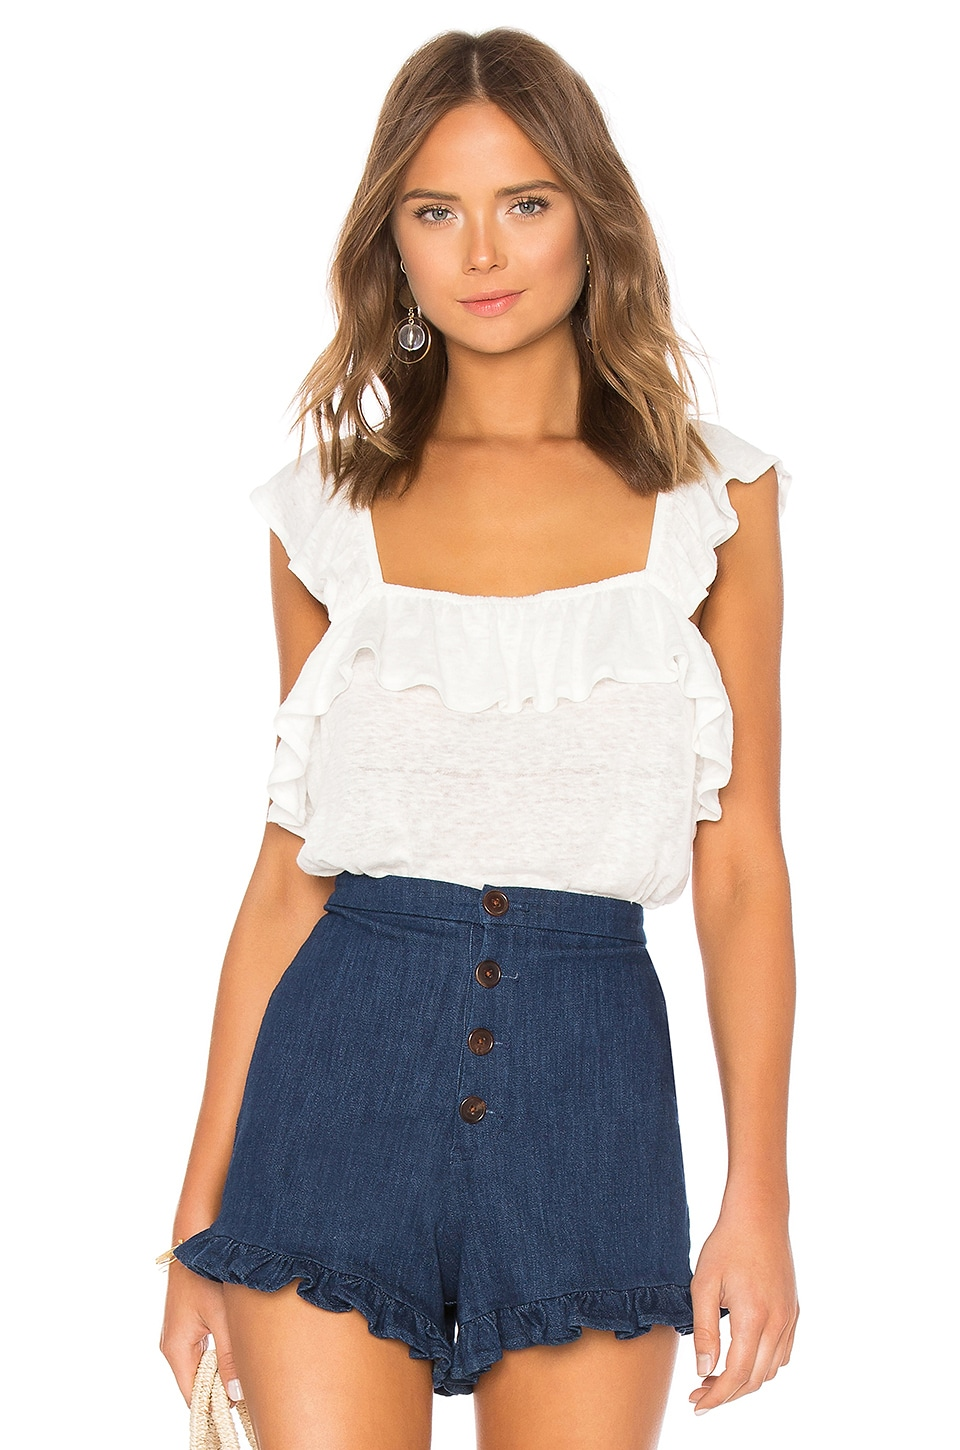 Ruffled Edge Square Neck Ruffle Top